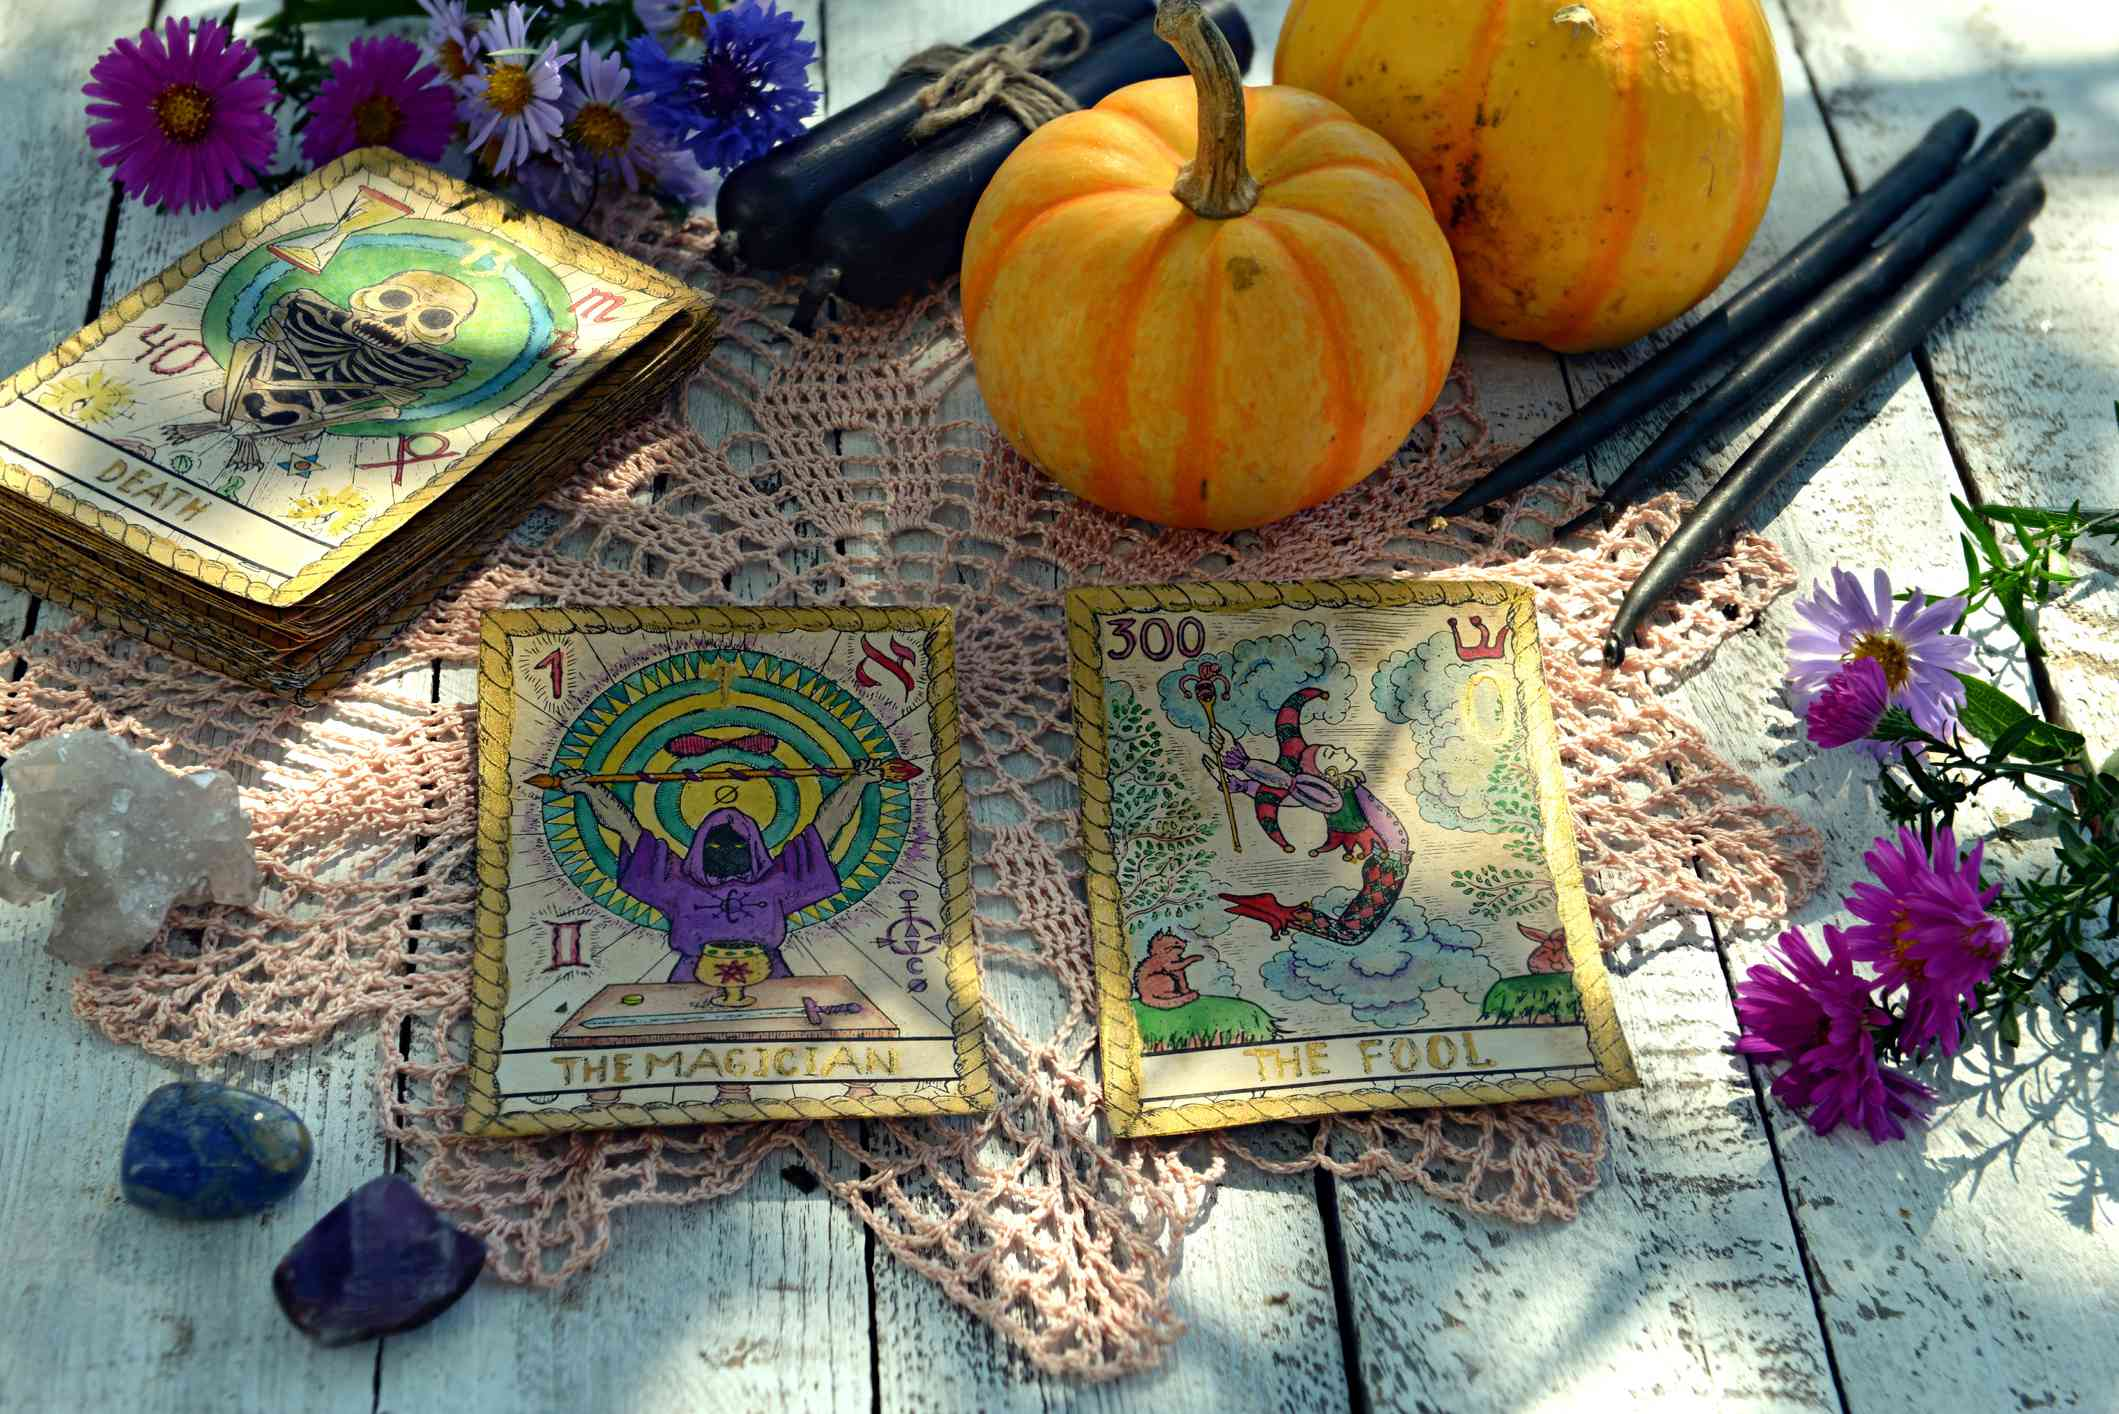 Still life with pumpkins, tarot cards and black candles on old napkin with embroidery